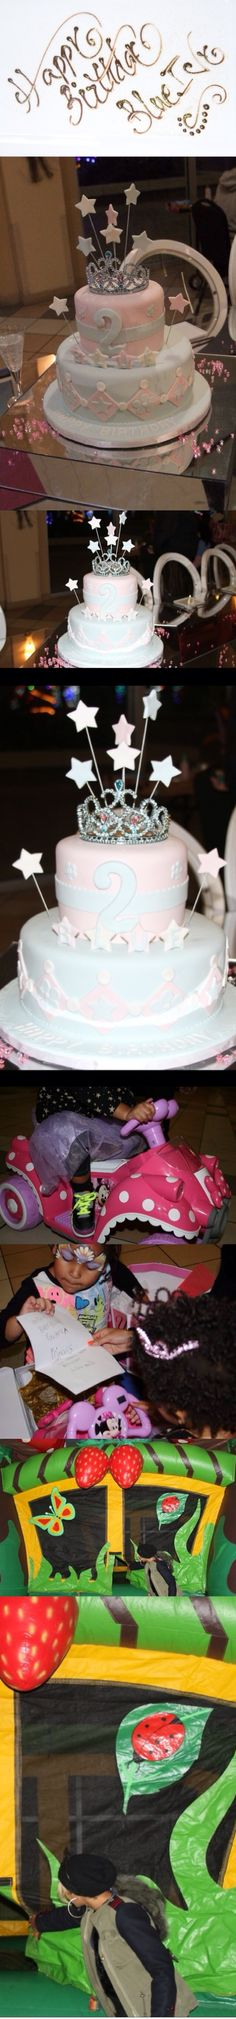 Beyonce Blue Ivy's 2nd birthday 2014